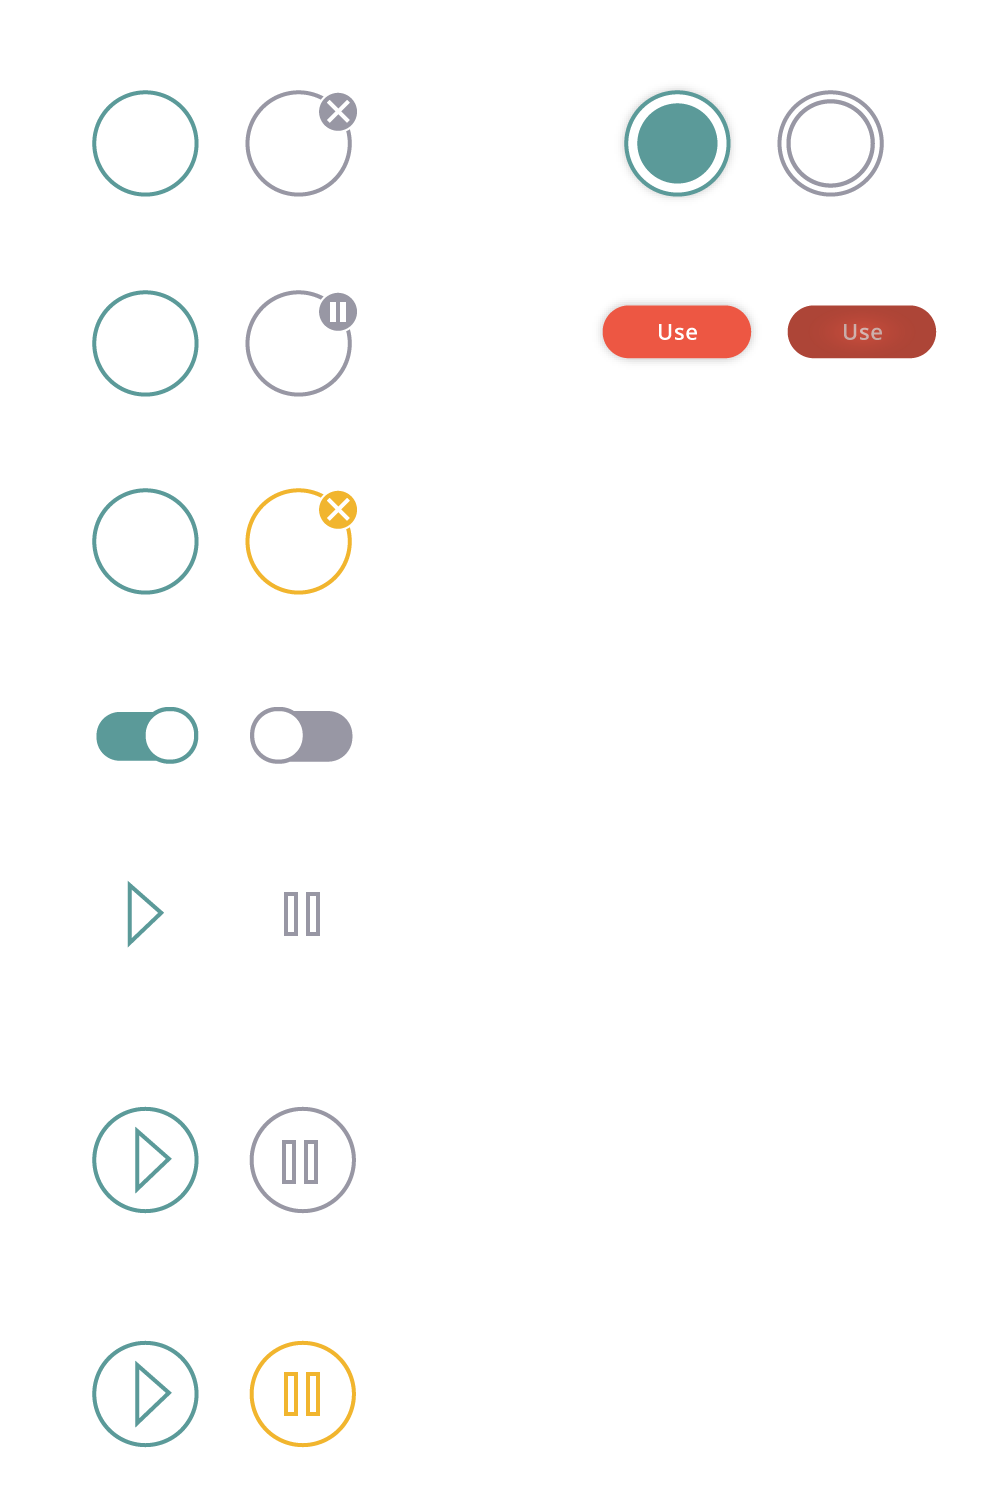 A bunch of ideas for the button in the top right corner of the coaster view.